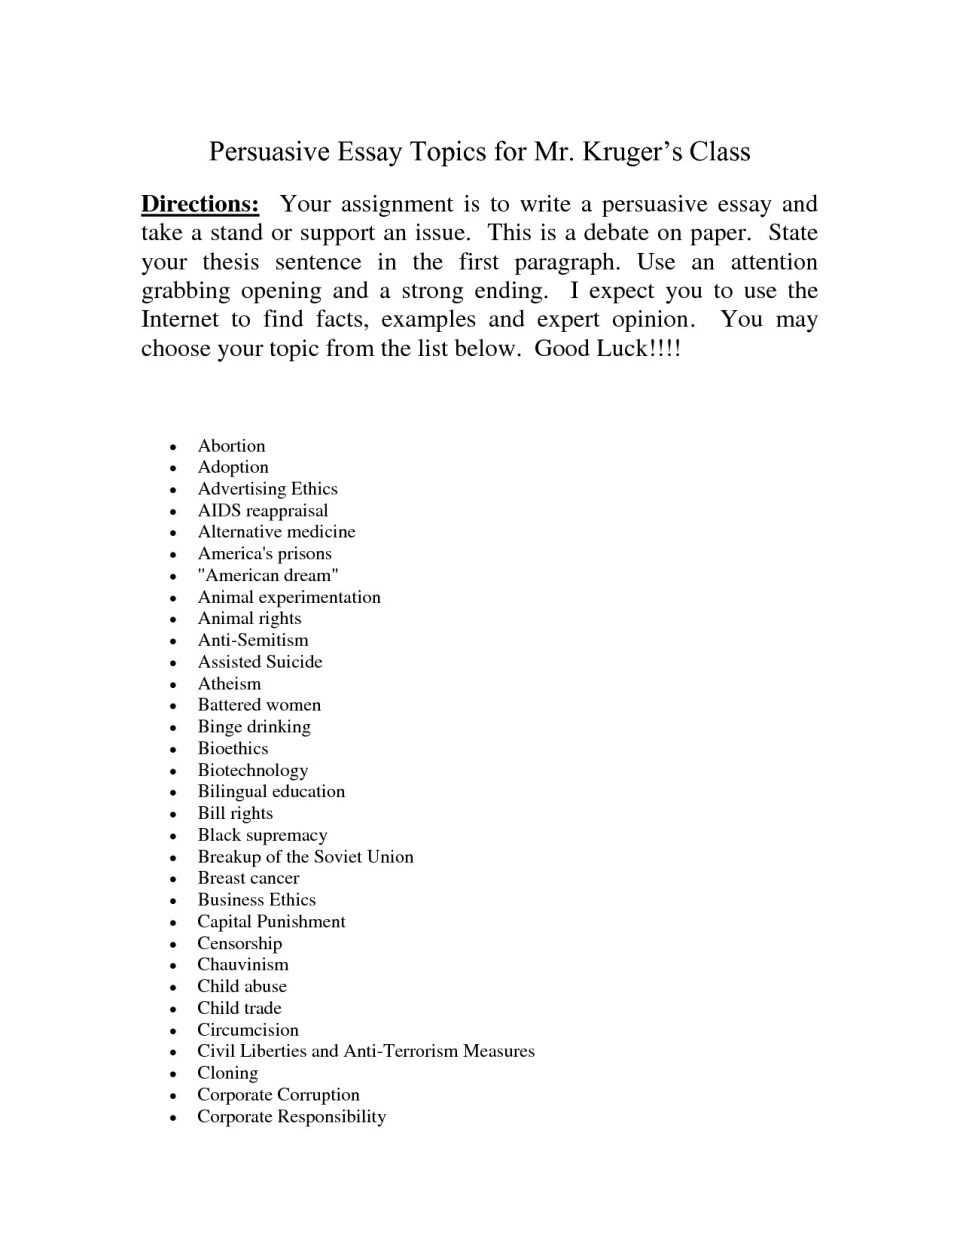 001 Topic For Essay Barca Fontanacountryinn Within Good Persuasive Narrative Topics To Write Abo Easy About Personal Descriptive Research Paper Informative Synthesis College Fantastic Computer Science 960